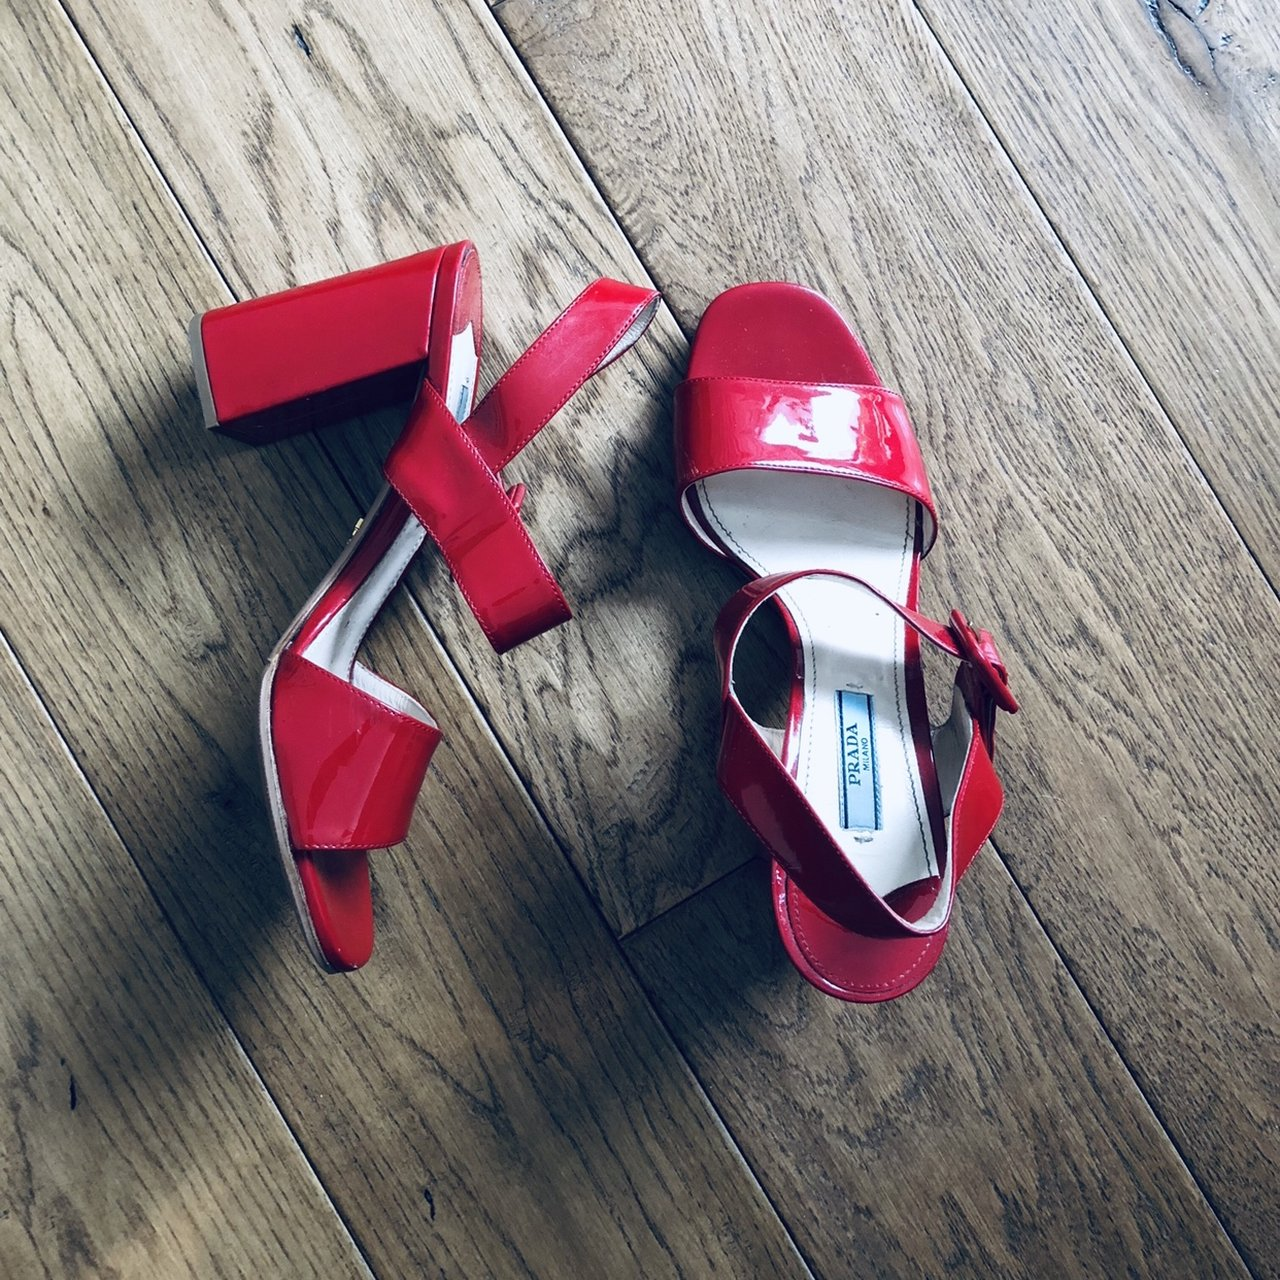 1fd863a8b5 @ksue1117. 5 months ago. New York, United States. Prada Classic red patent  leather heels / sandals.